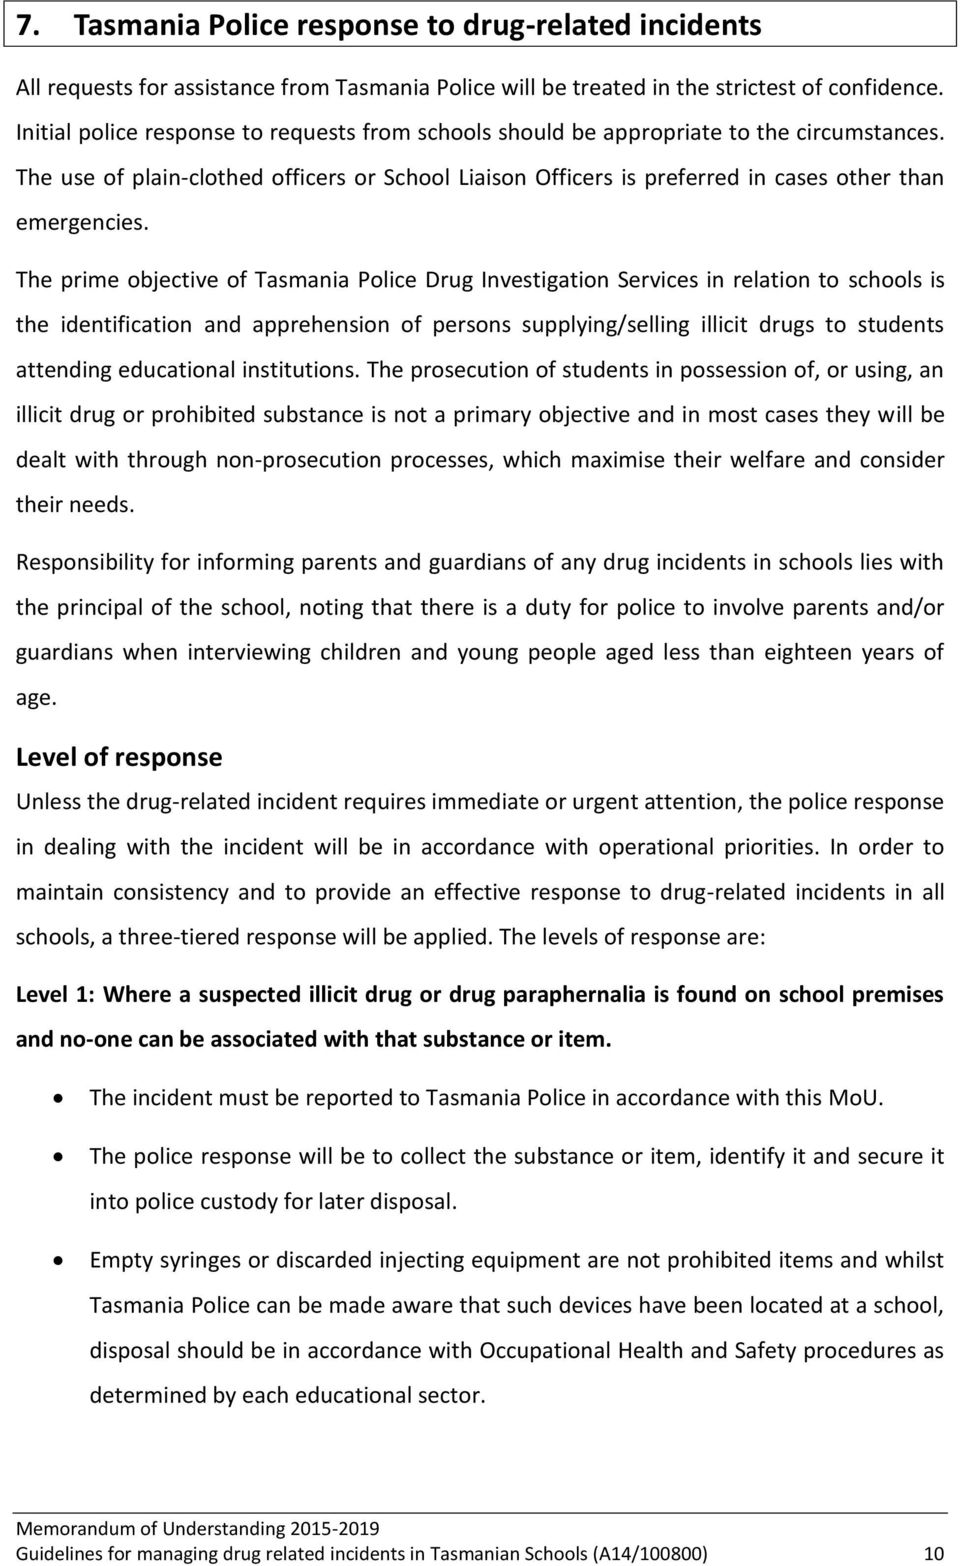 The prime objective of Tasmania Police Drug Investigation Services in relation to schools is the identification and apprehension of persons supplying/selling illicit drugs to students attending